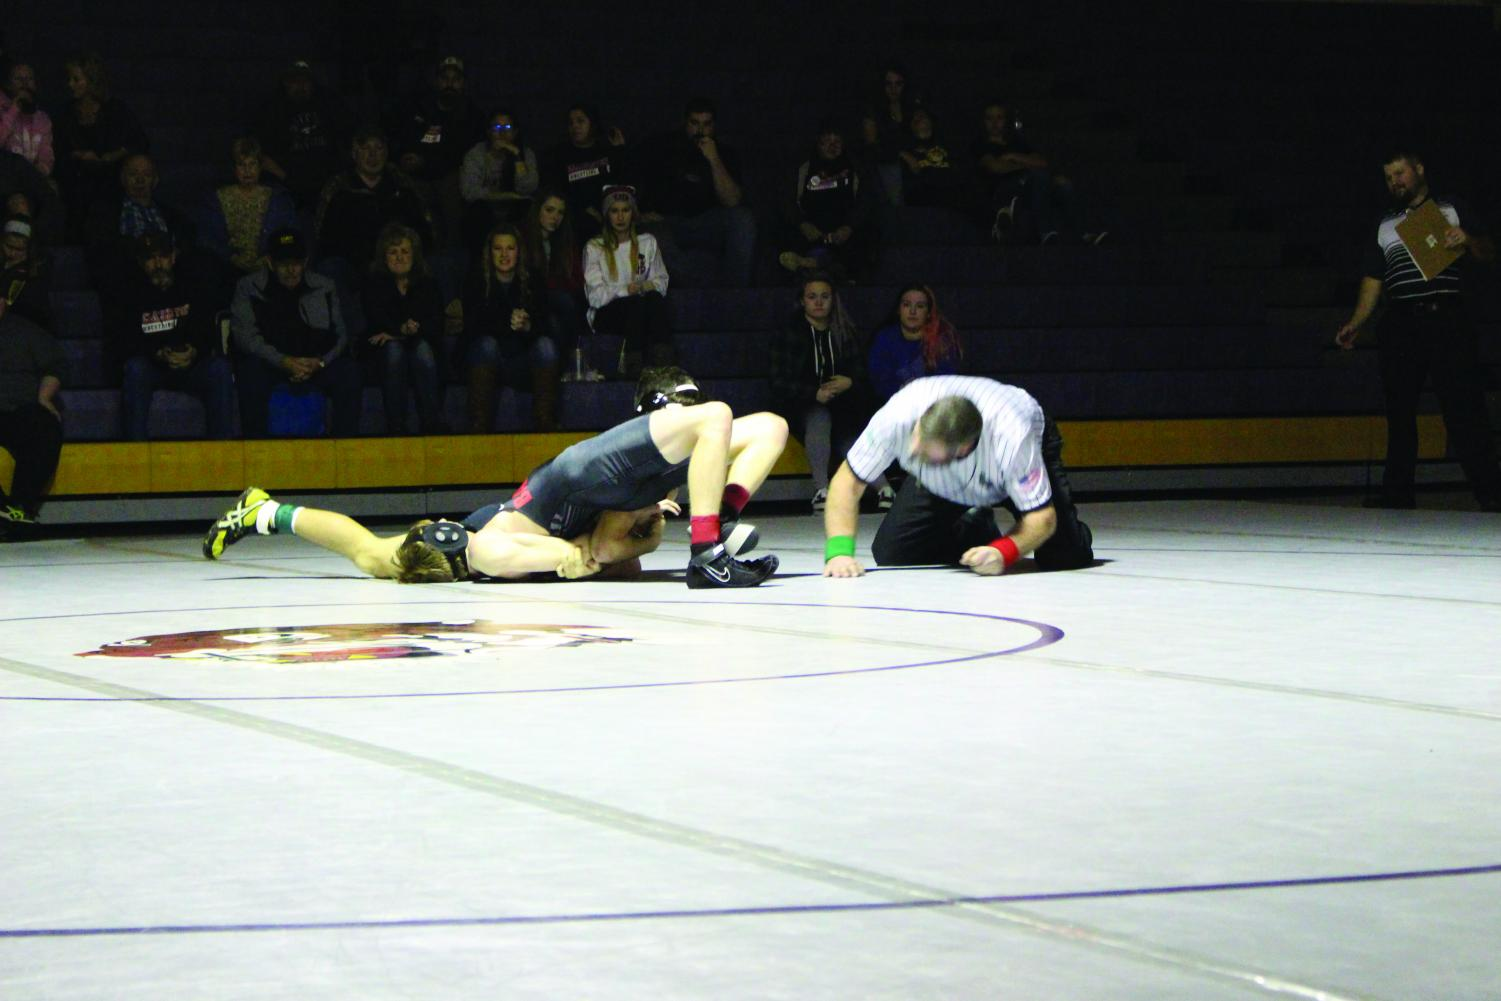 Lewiston senior, Tanner Hutchens, pins to win the match vs. Clarkston High School freshman, Jayden Musgrove, Jan. 16 at Booth Hall..